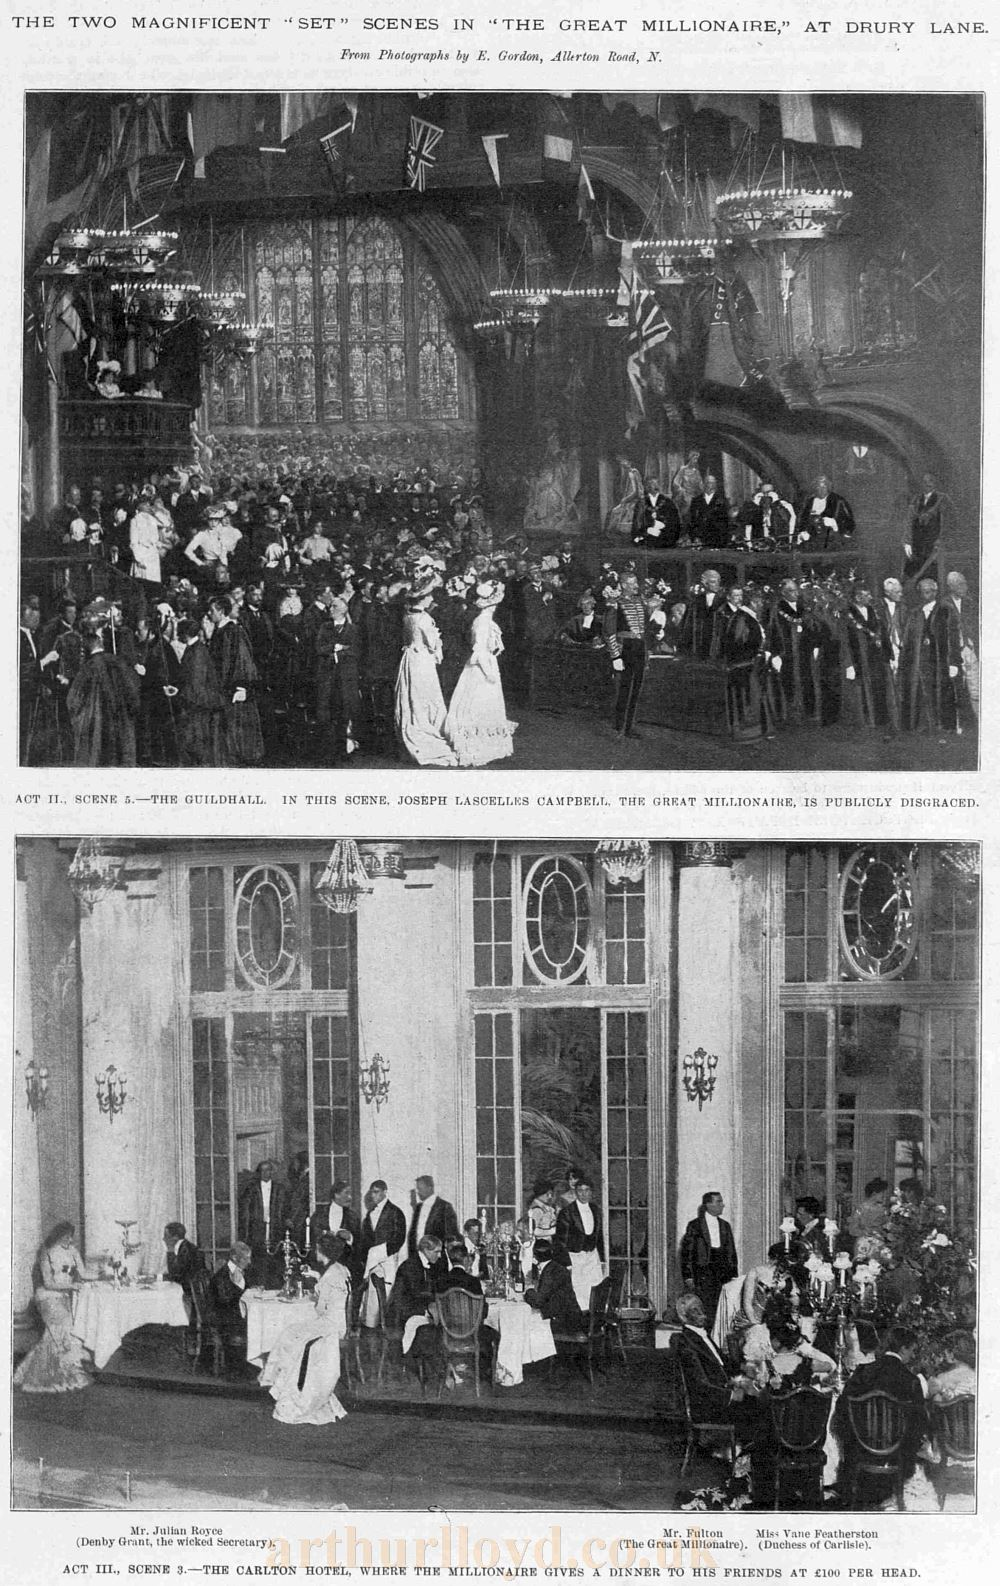 Two Magnificent 'Set' scenes in 'The Great Millionaire' the 1901 reopening production at the Theatre Royal, Drury Lane - From The Sketch, September 18th 1901.